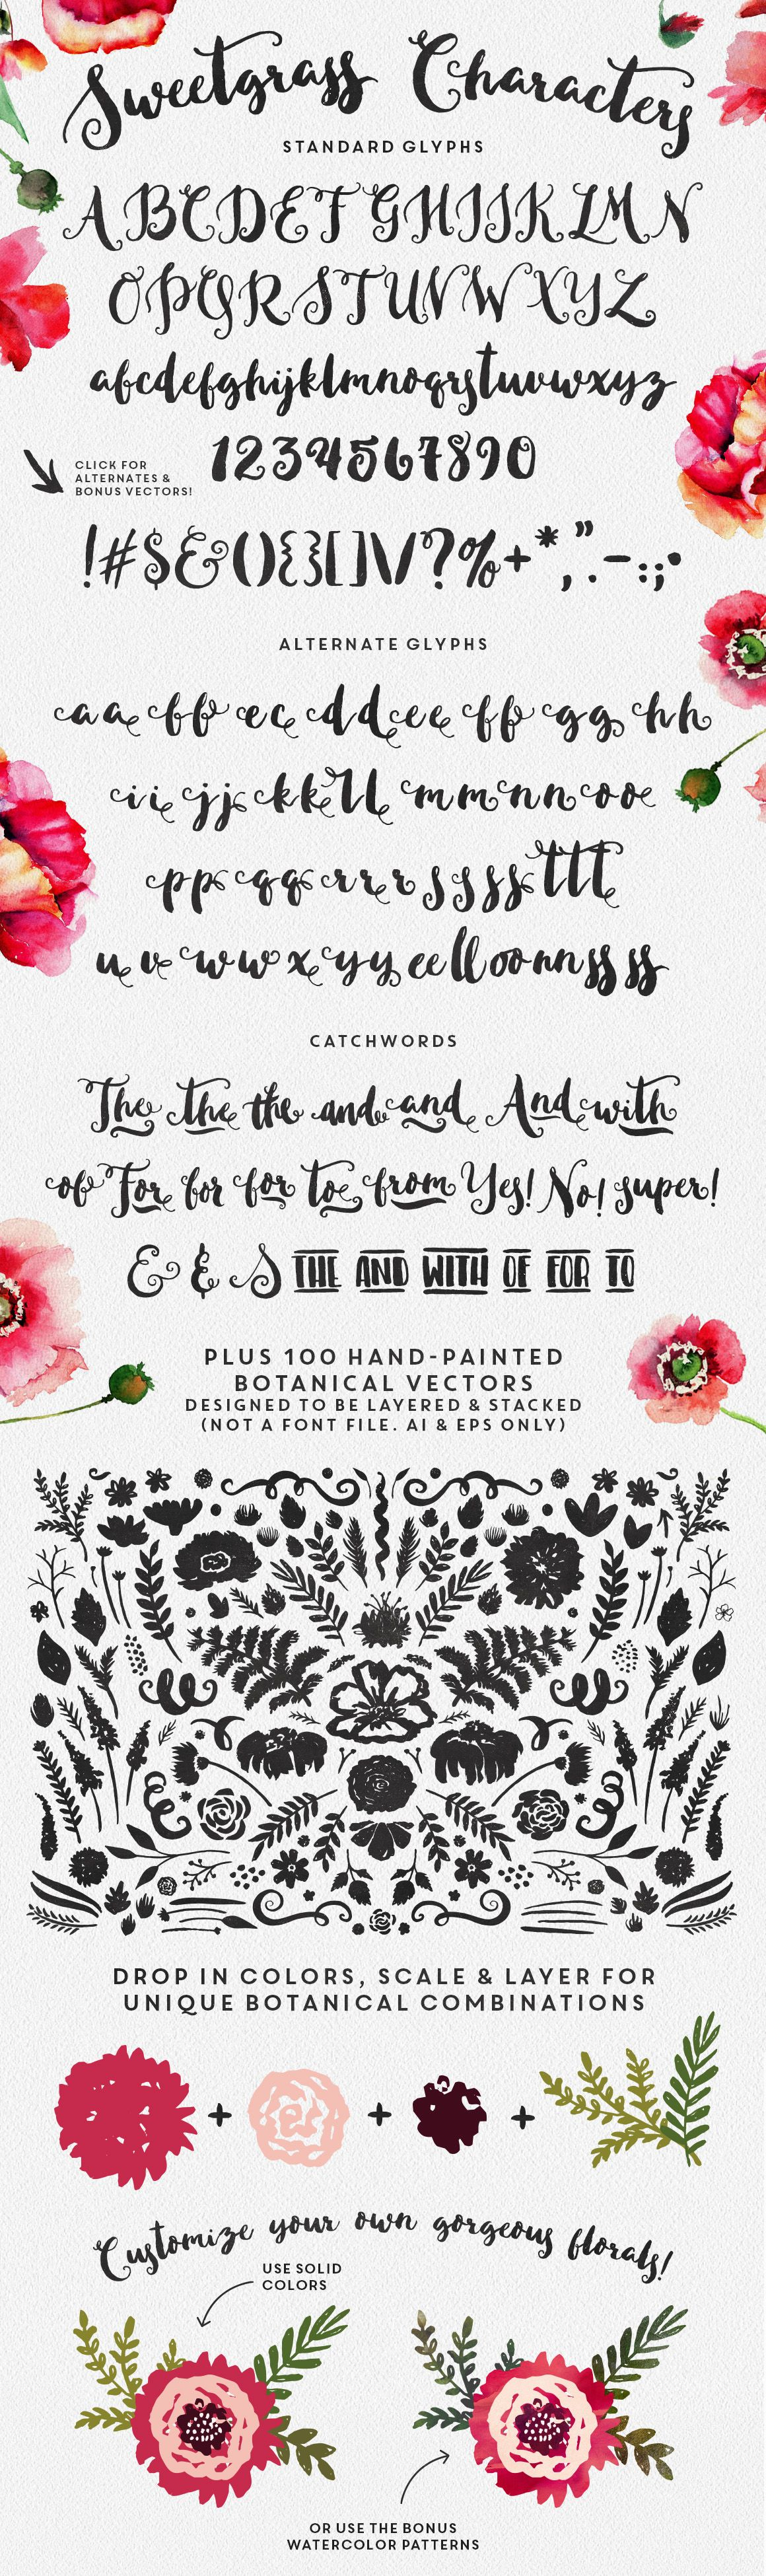 Sweetgrass font by Make Media Co.